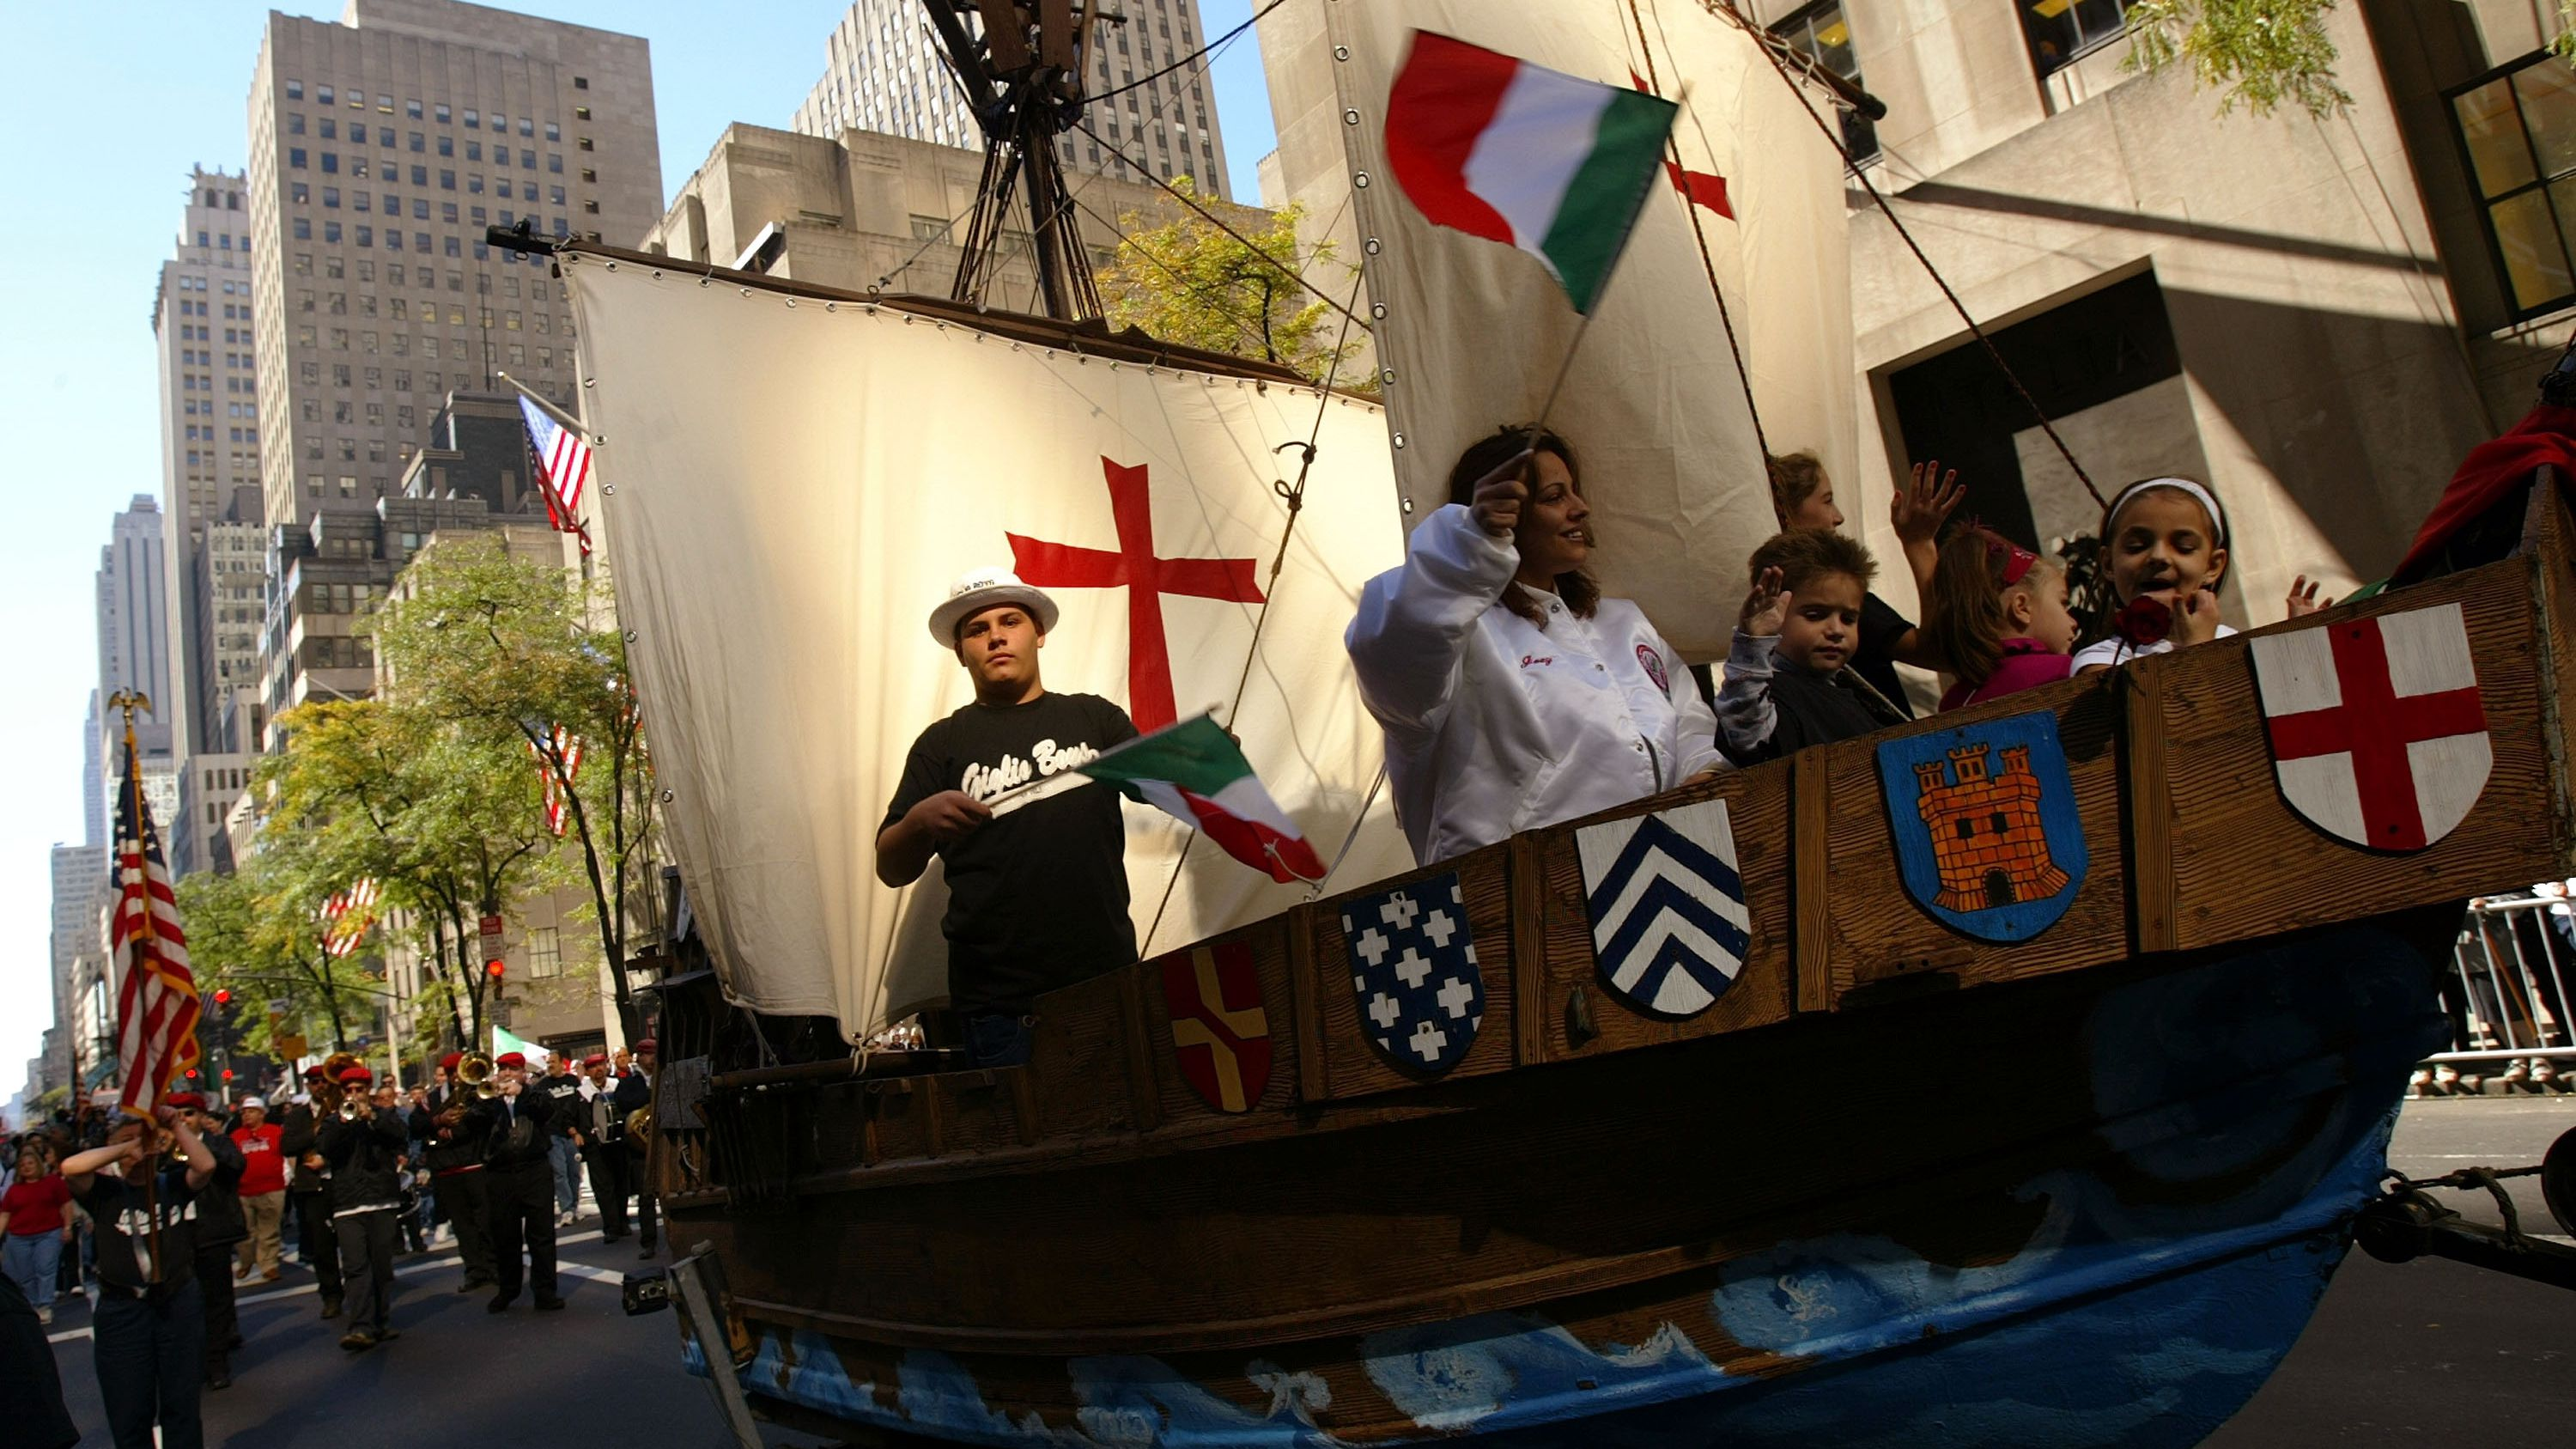 The Controversy Over Columbus Day Celebrations